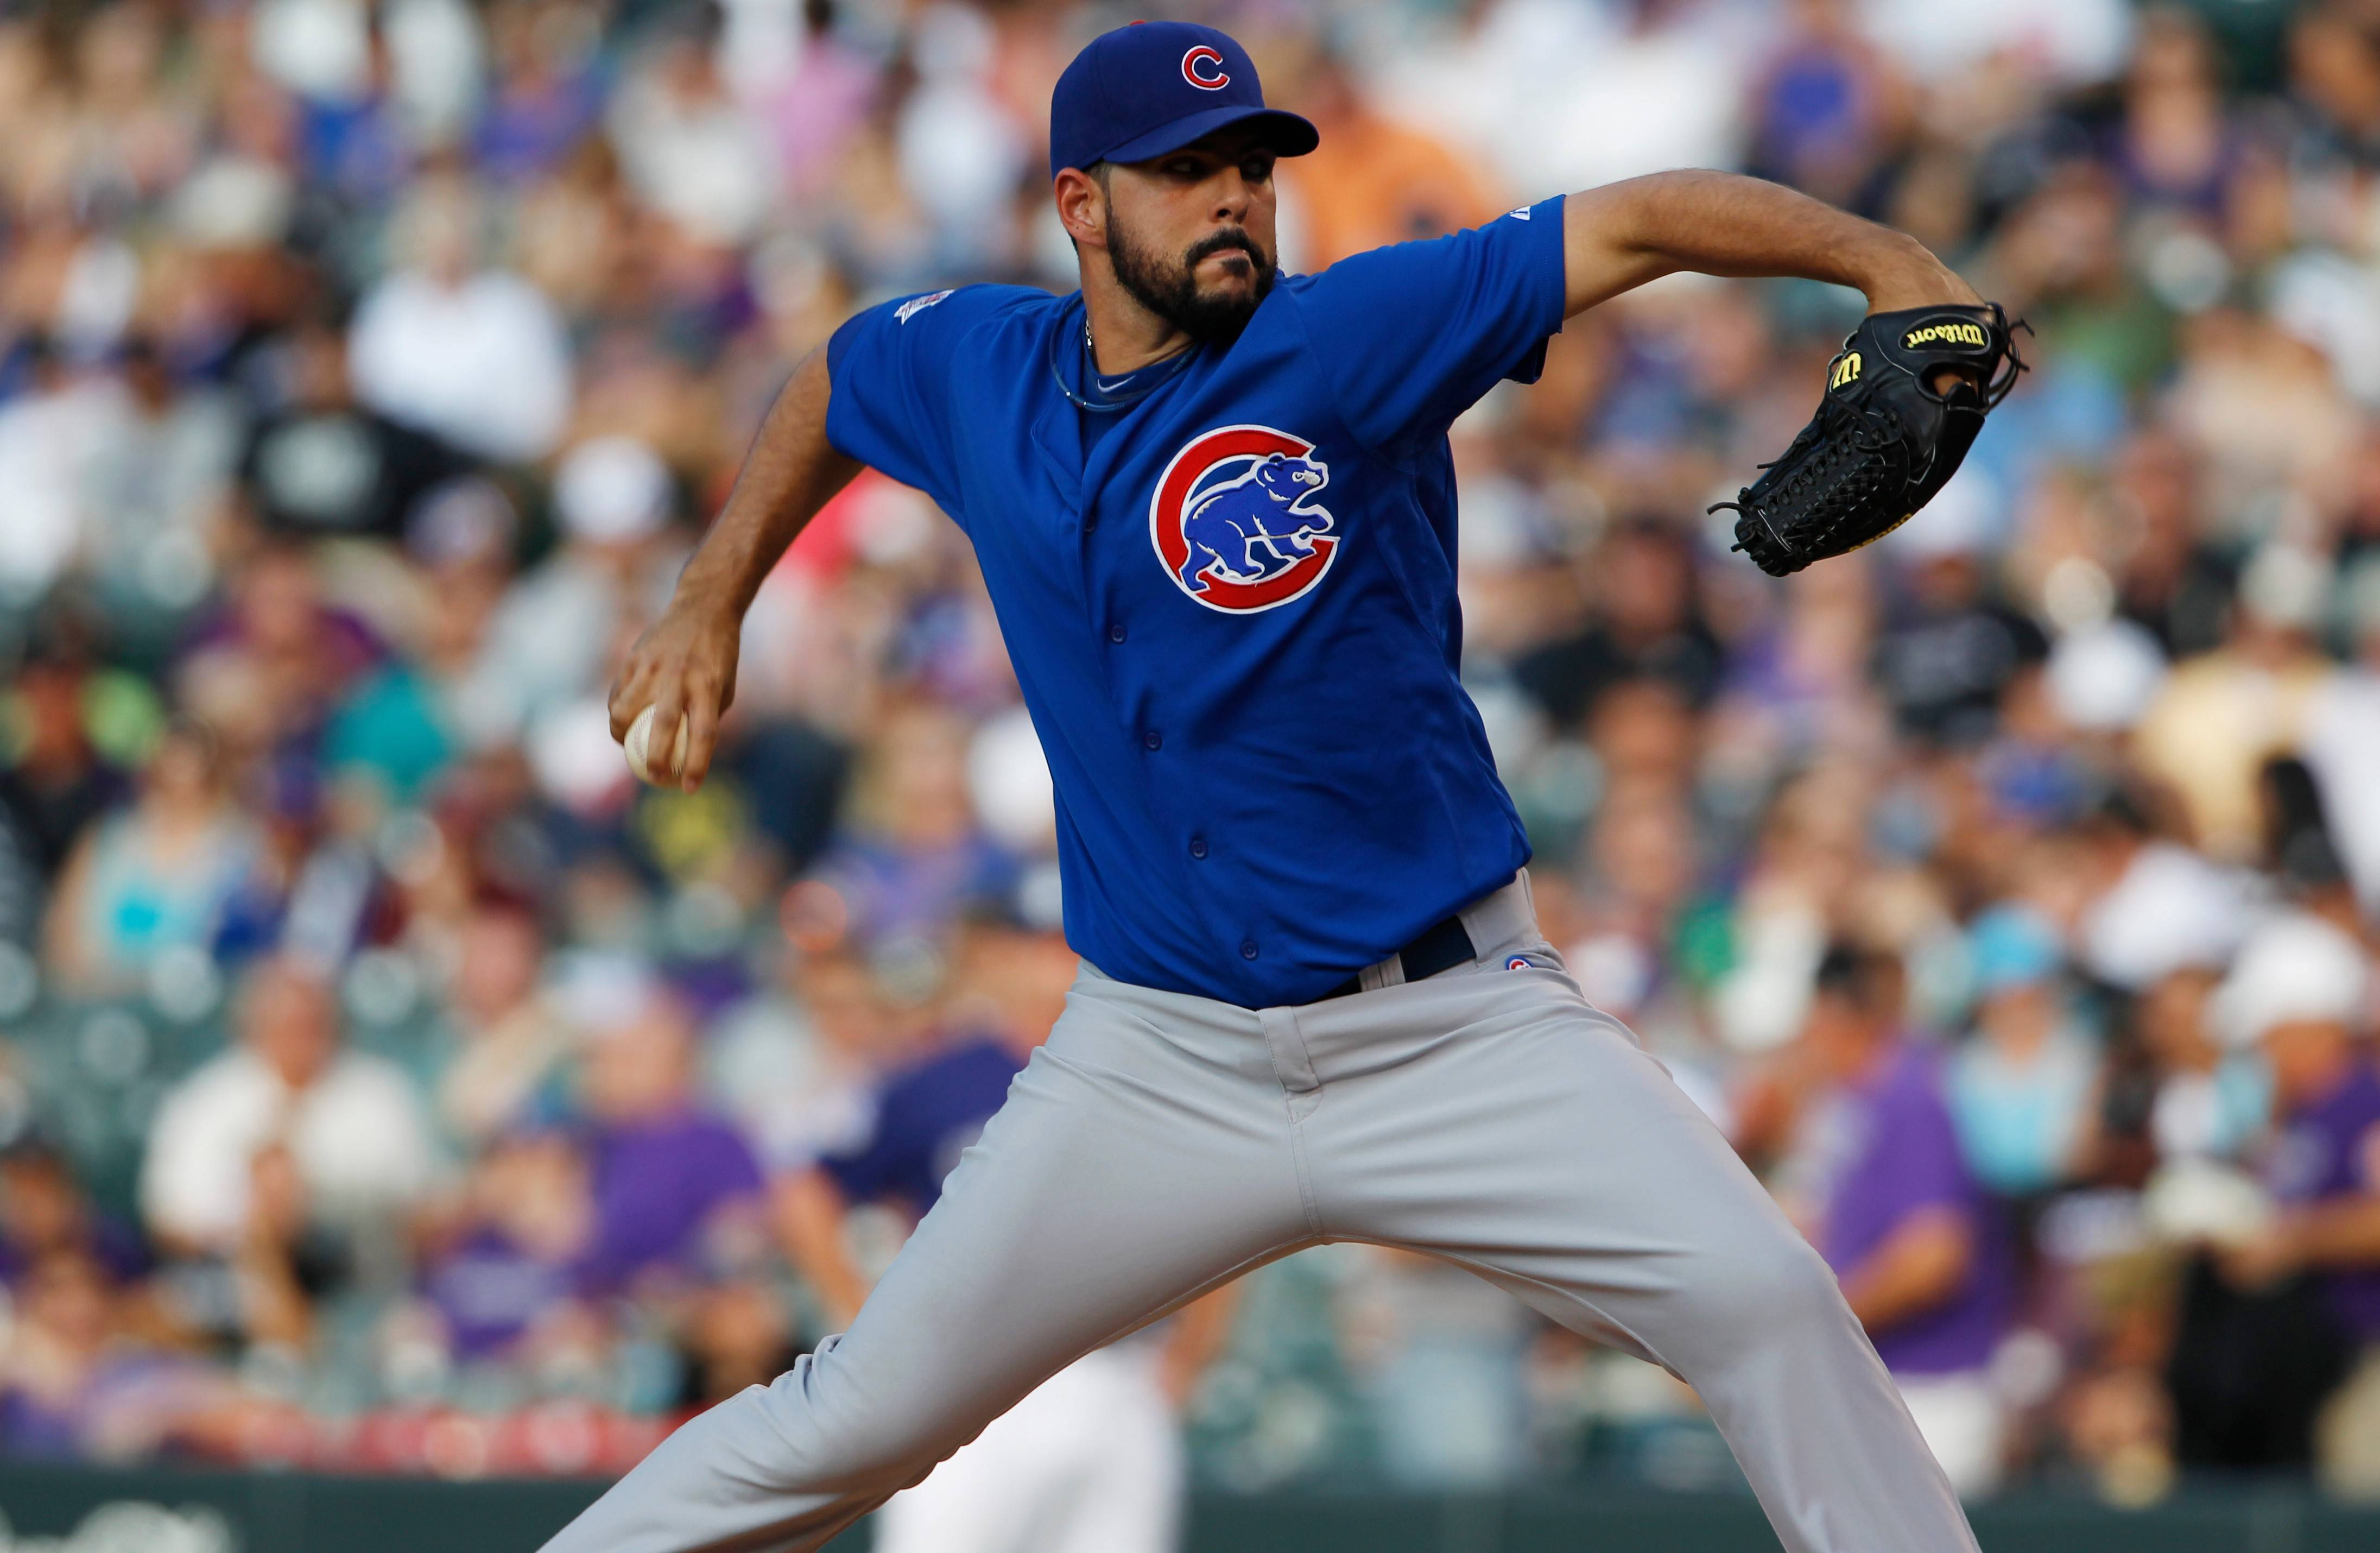 Versatile Villanueva will be Cubs' 5th starter